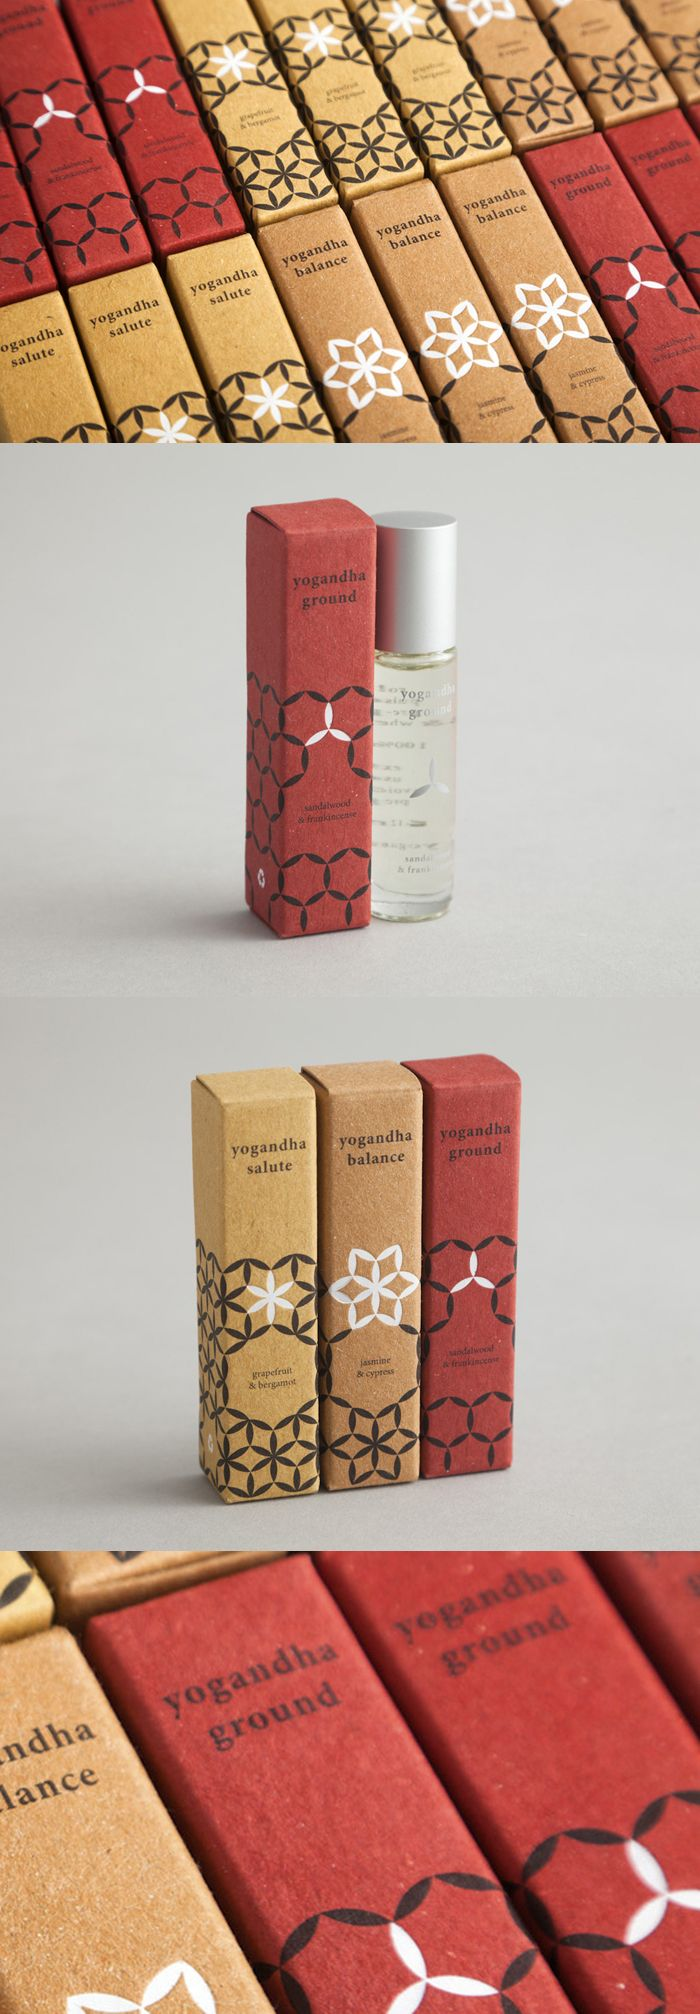 Yogandha 100% natural yoga oils packaging by Distinctive Repetition